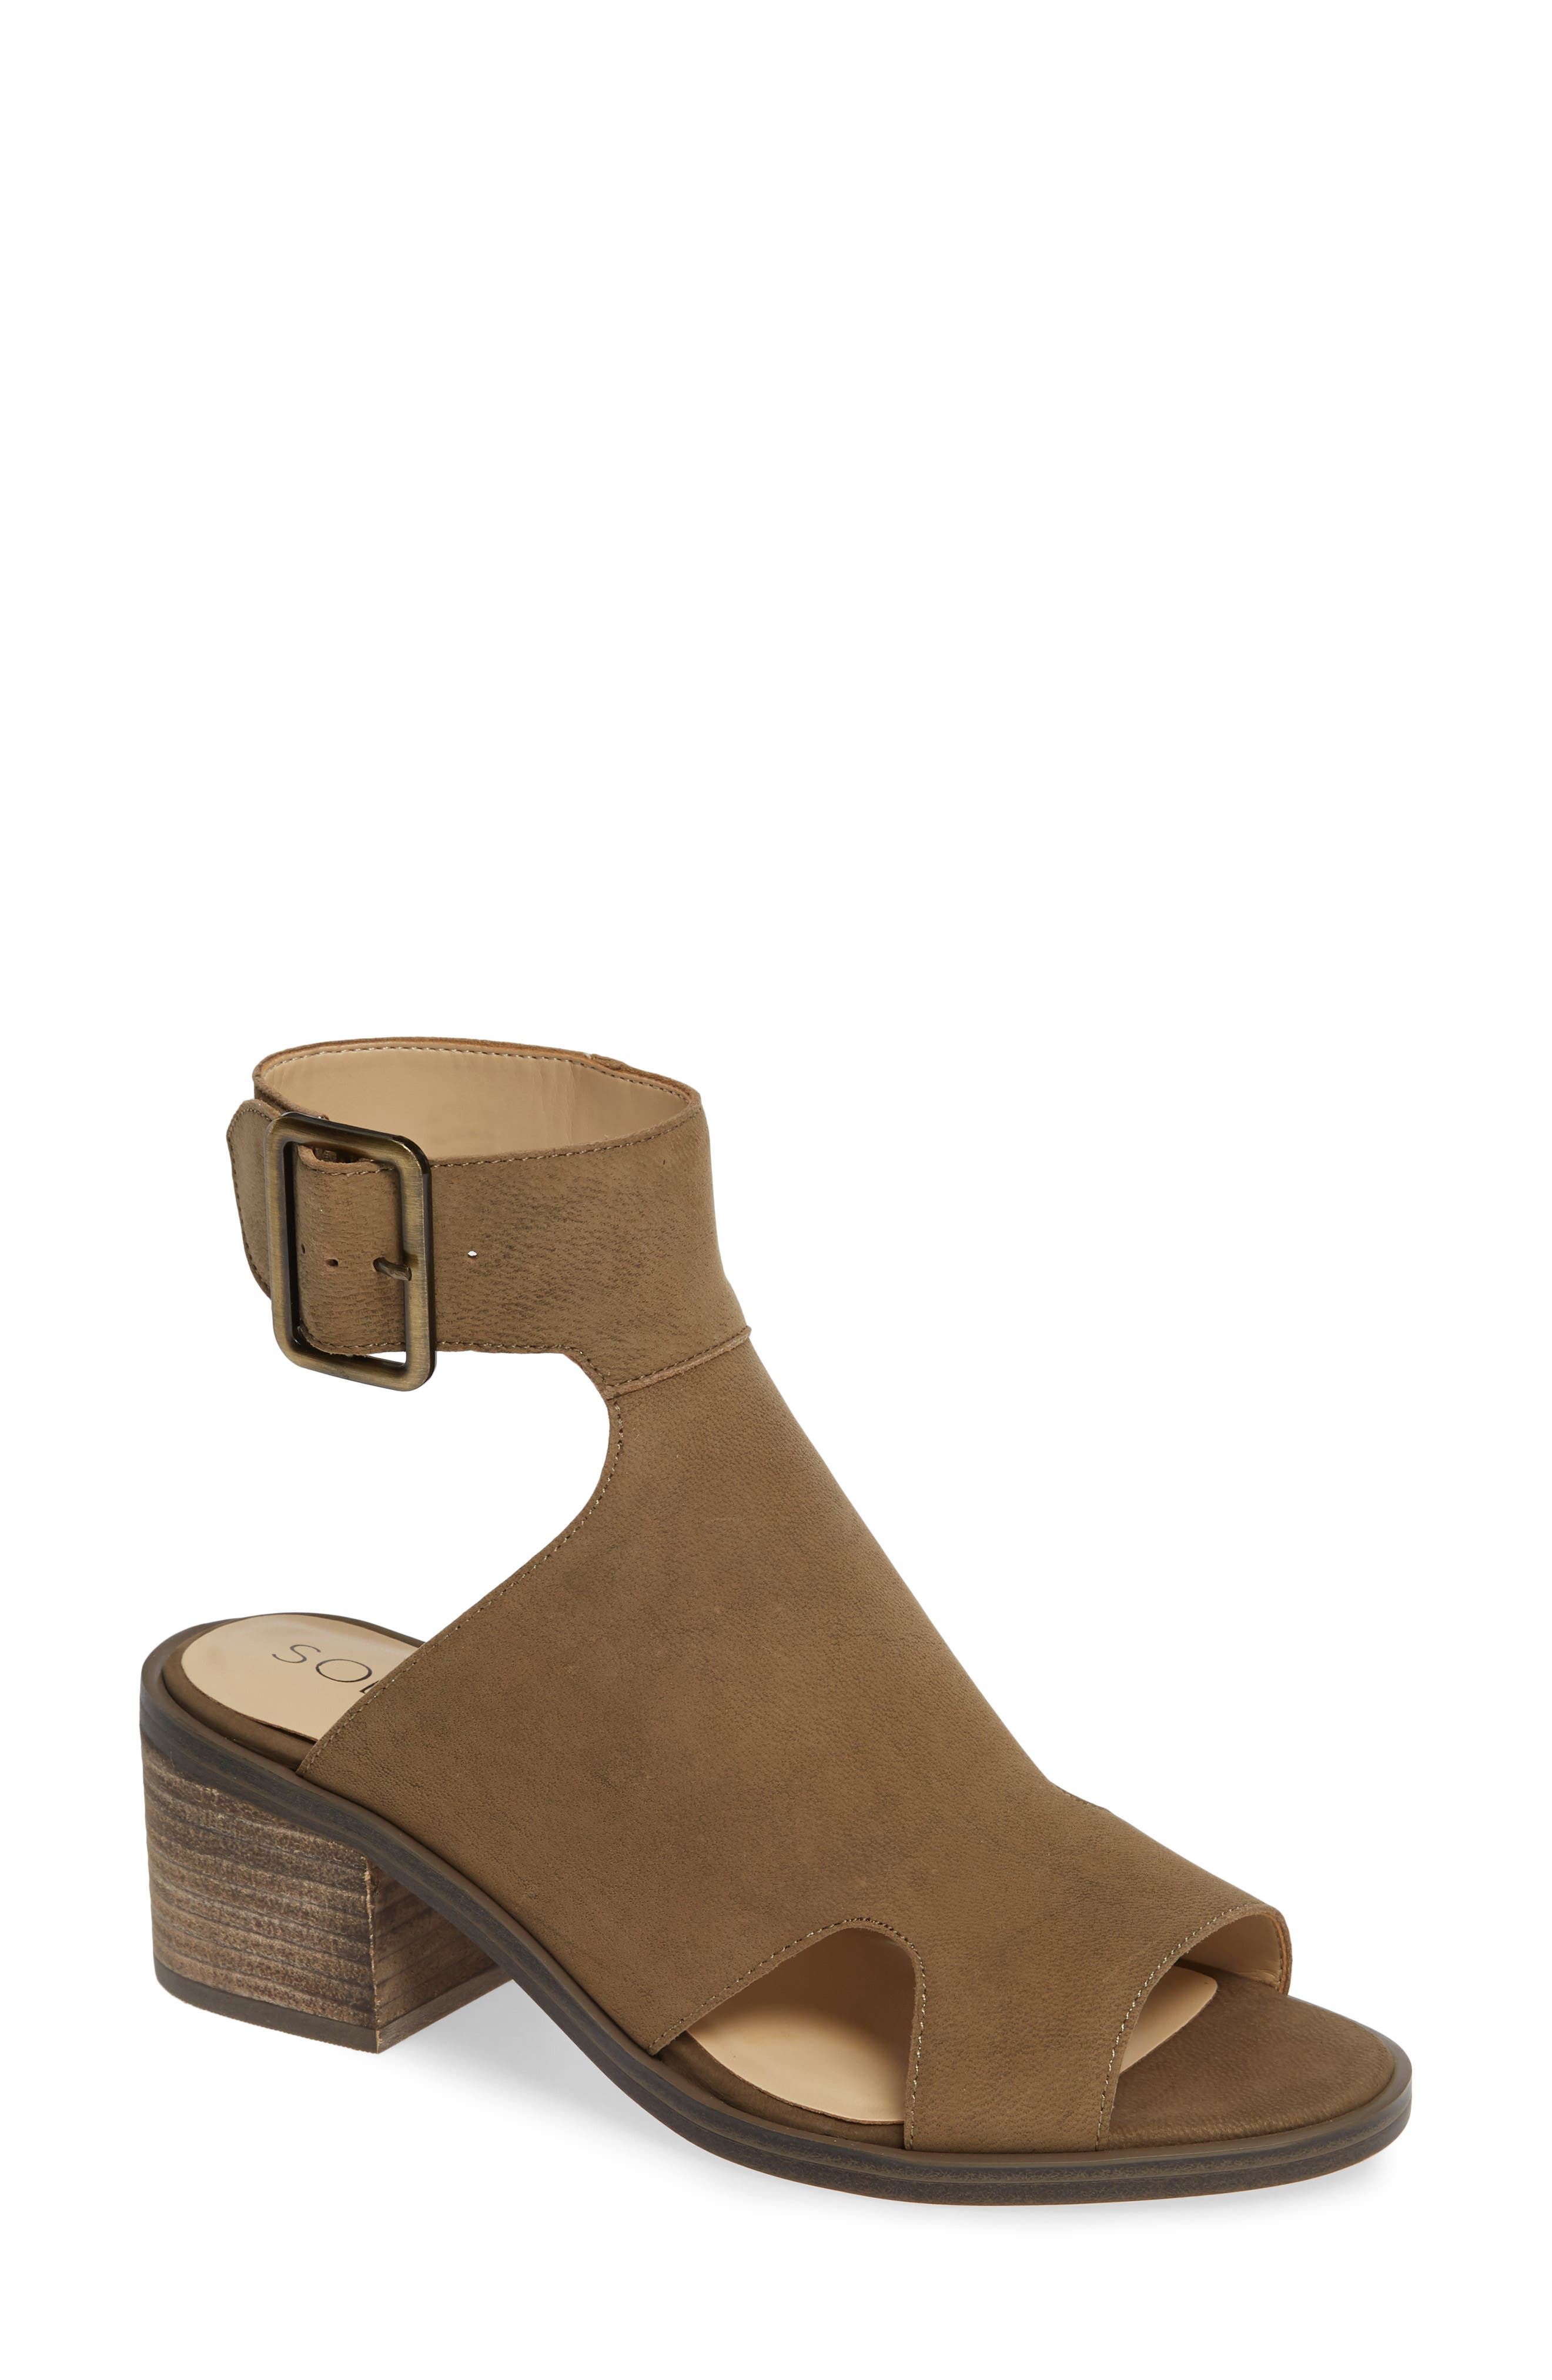 Tally Ankle Cuff Sandal,                             Main thumbnail 1, color,                             ANTIQUE GREEN NUBUCK